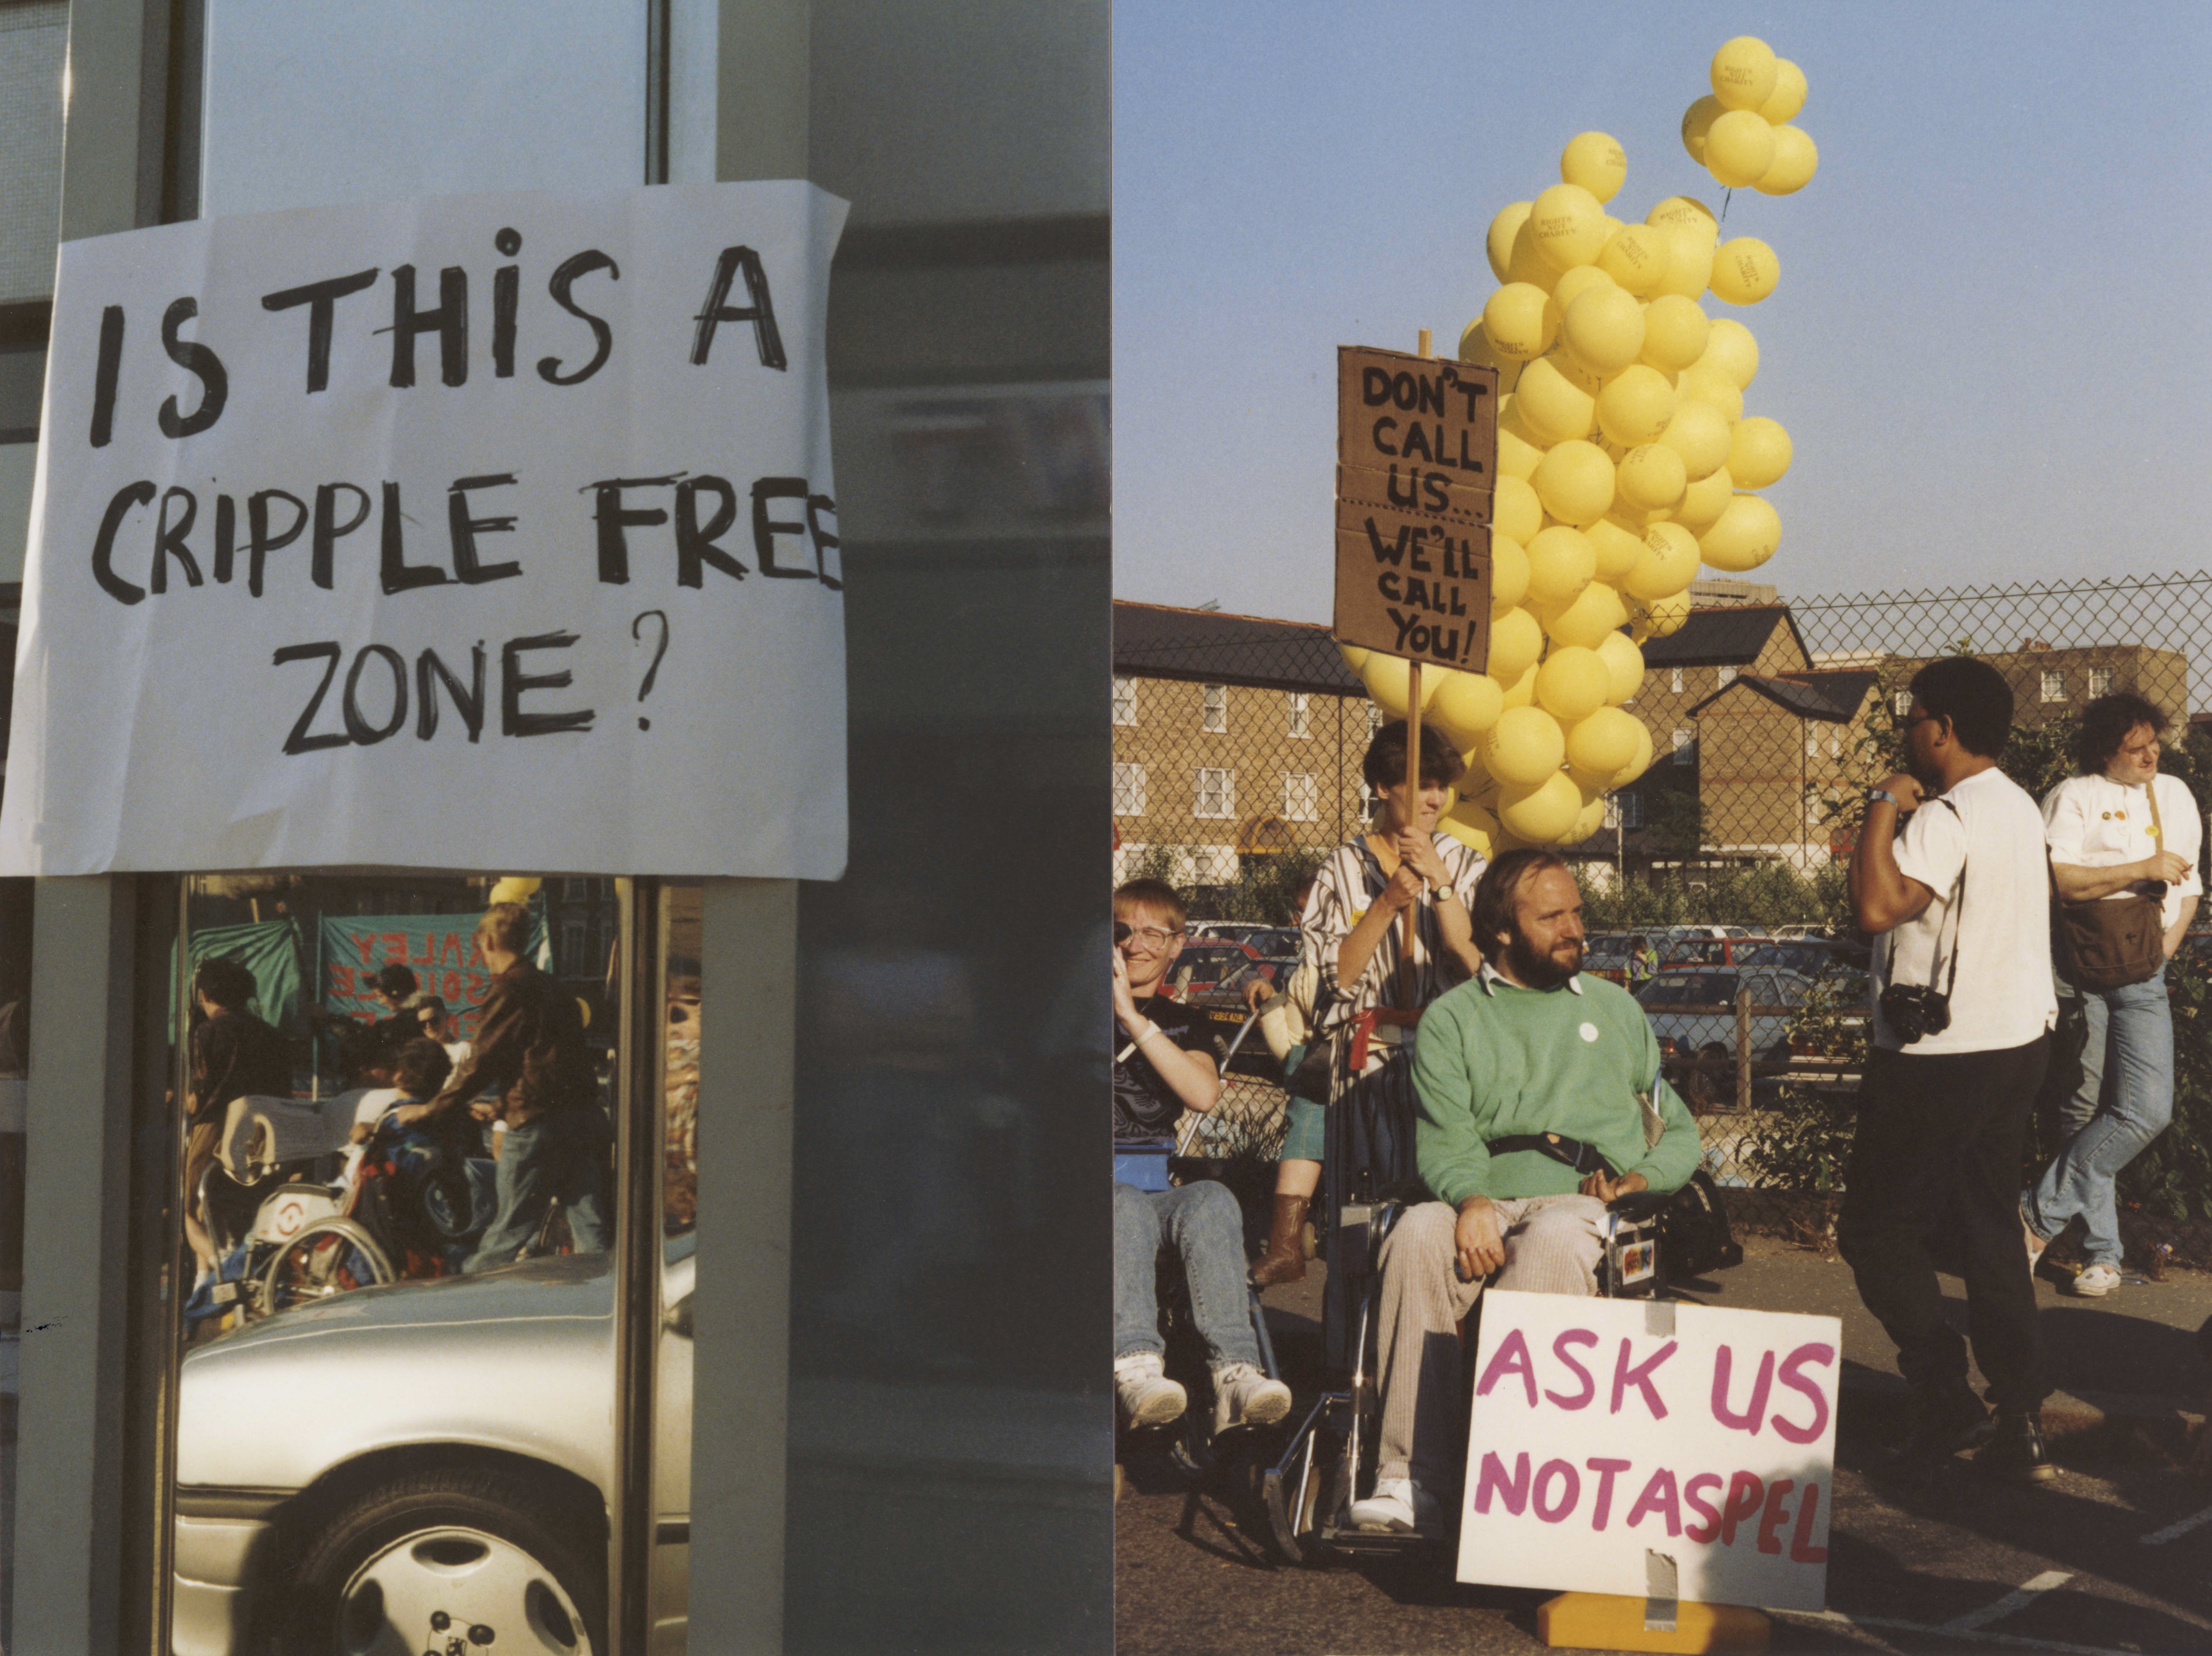 Colour photograph of a group of disabled protesters outside in what looks to be a car park, with blue skies. They are holding placards with slogans on and in the foreground is a sign saying Is this a cripple-free zone?